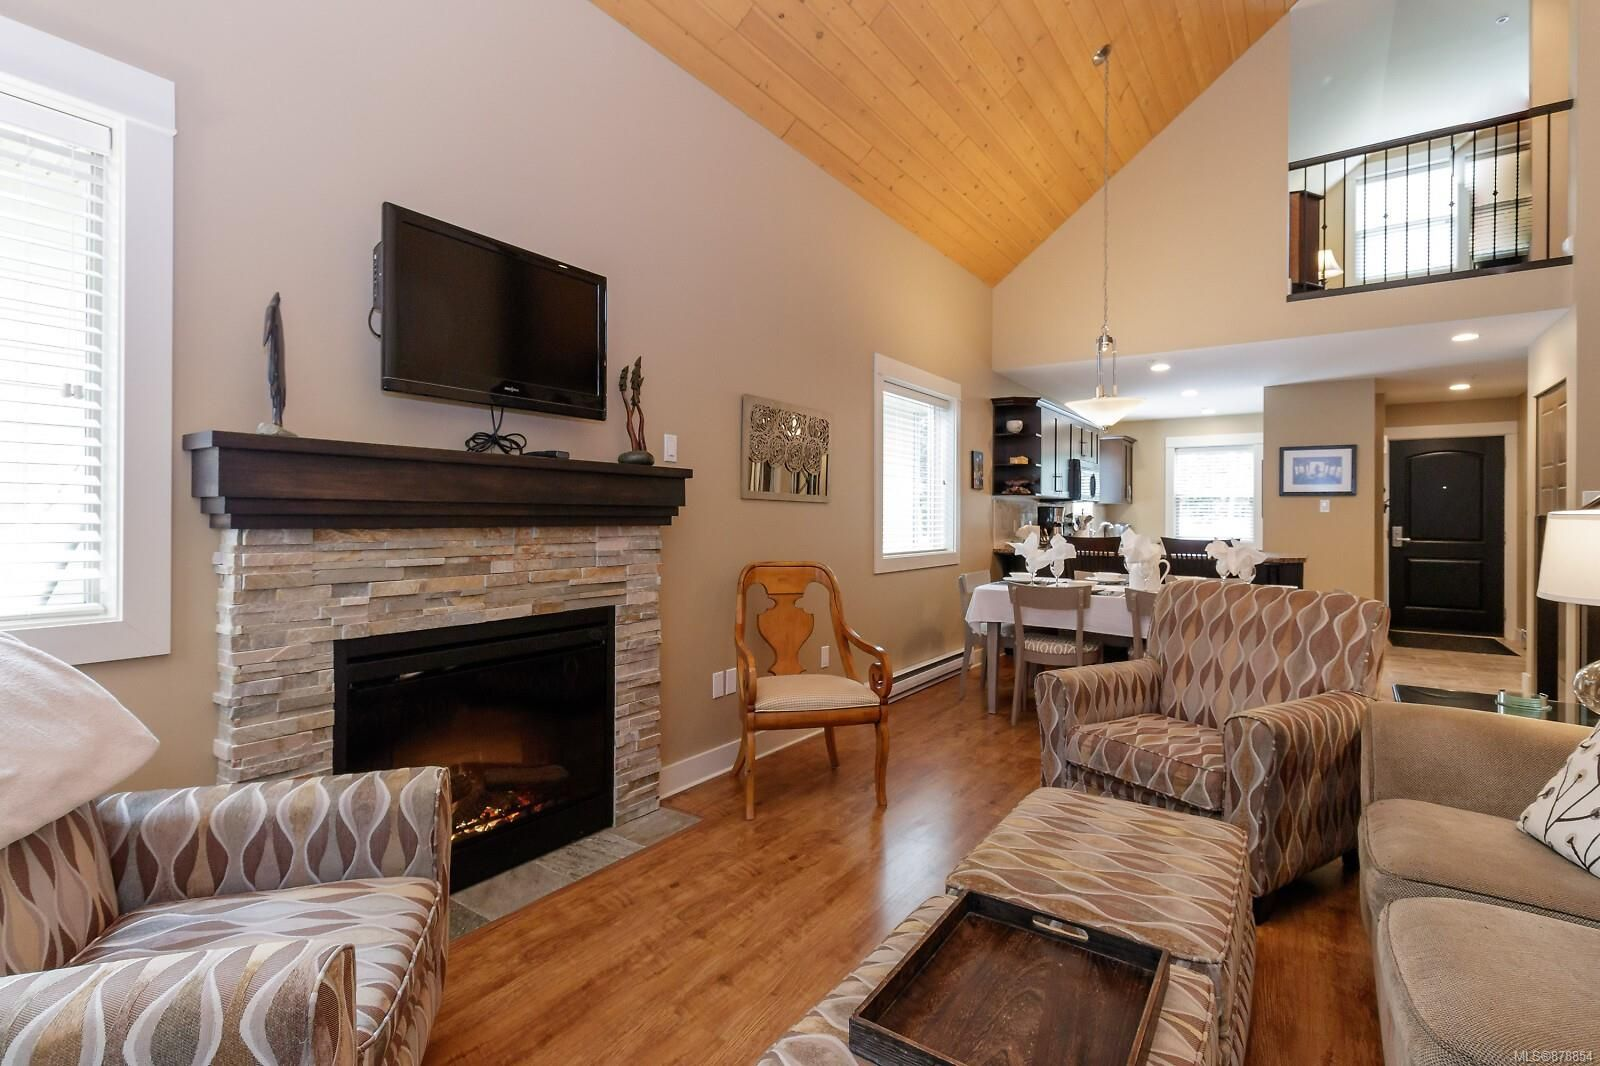 Photo 23: Photos: 223 1130 Resort Dr in : PQ Parksville Row/Townhouse for sale (Parksville/Qualicum)  : MLS®# 878854